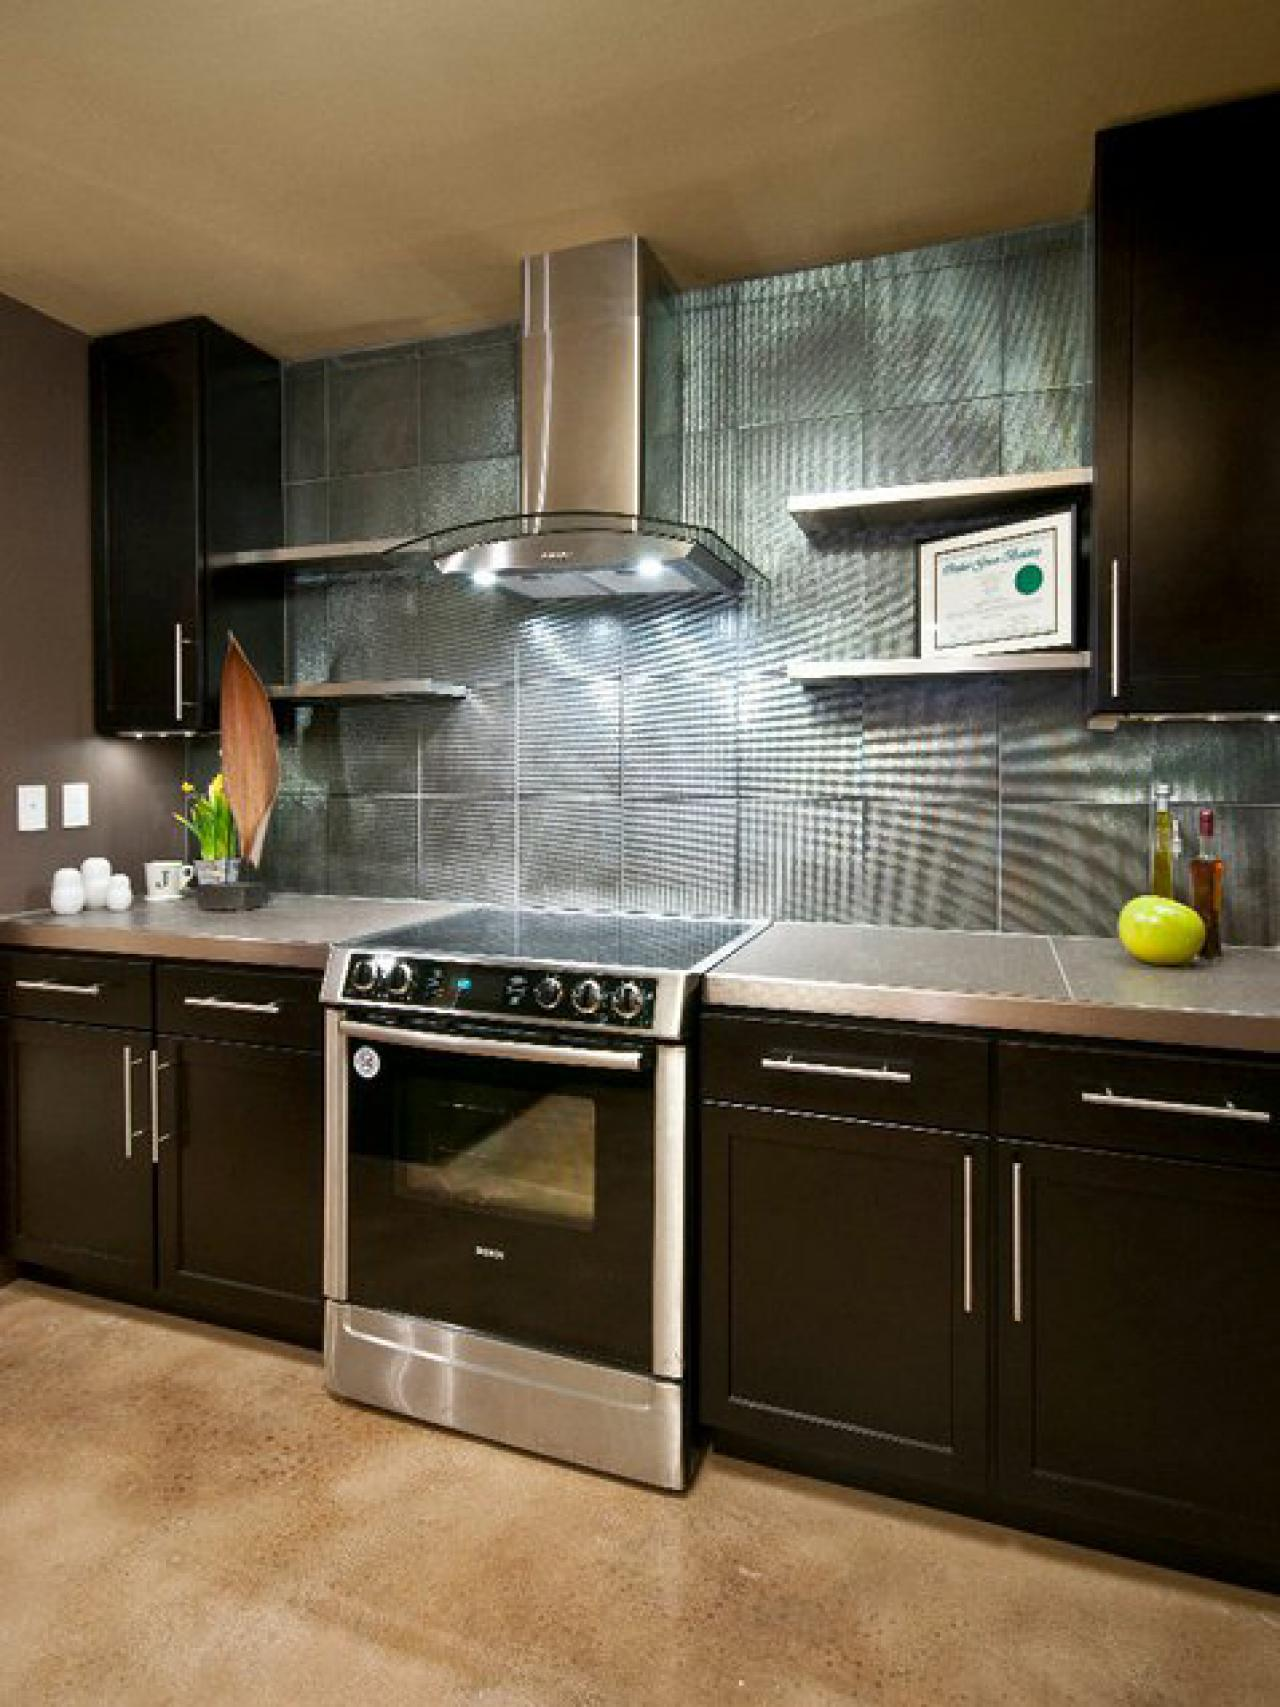 Do it yourself diy kitchen backsplash ideas hgtv pictures hgtv - Backsplash ideas kitchen ...